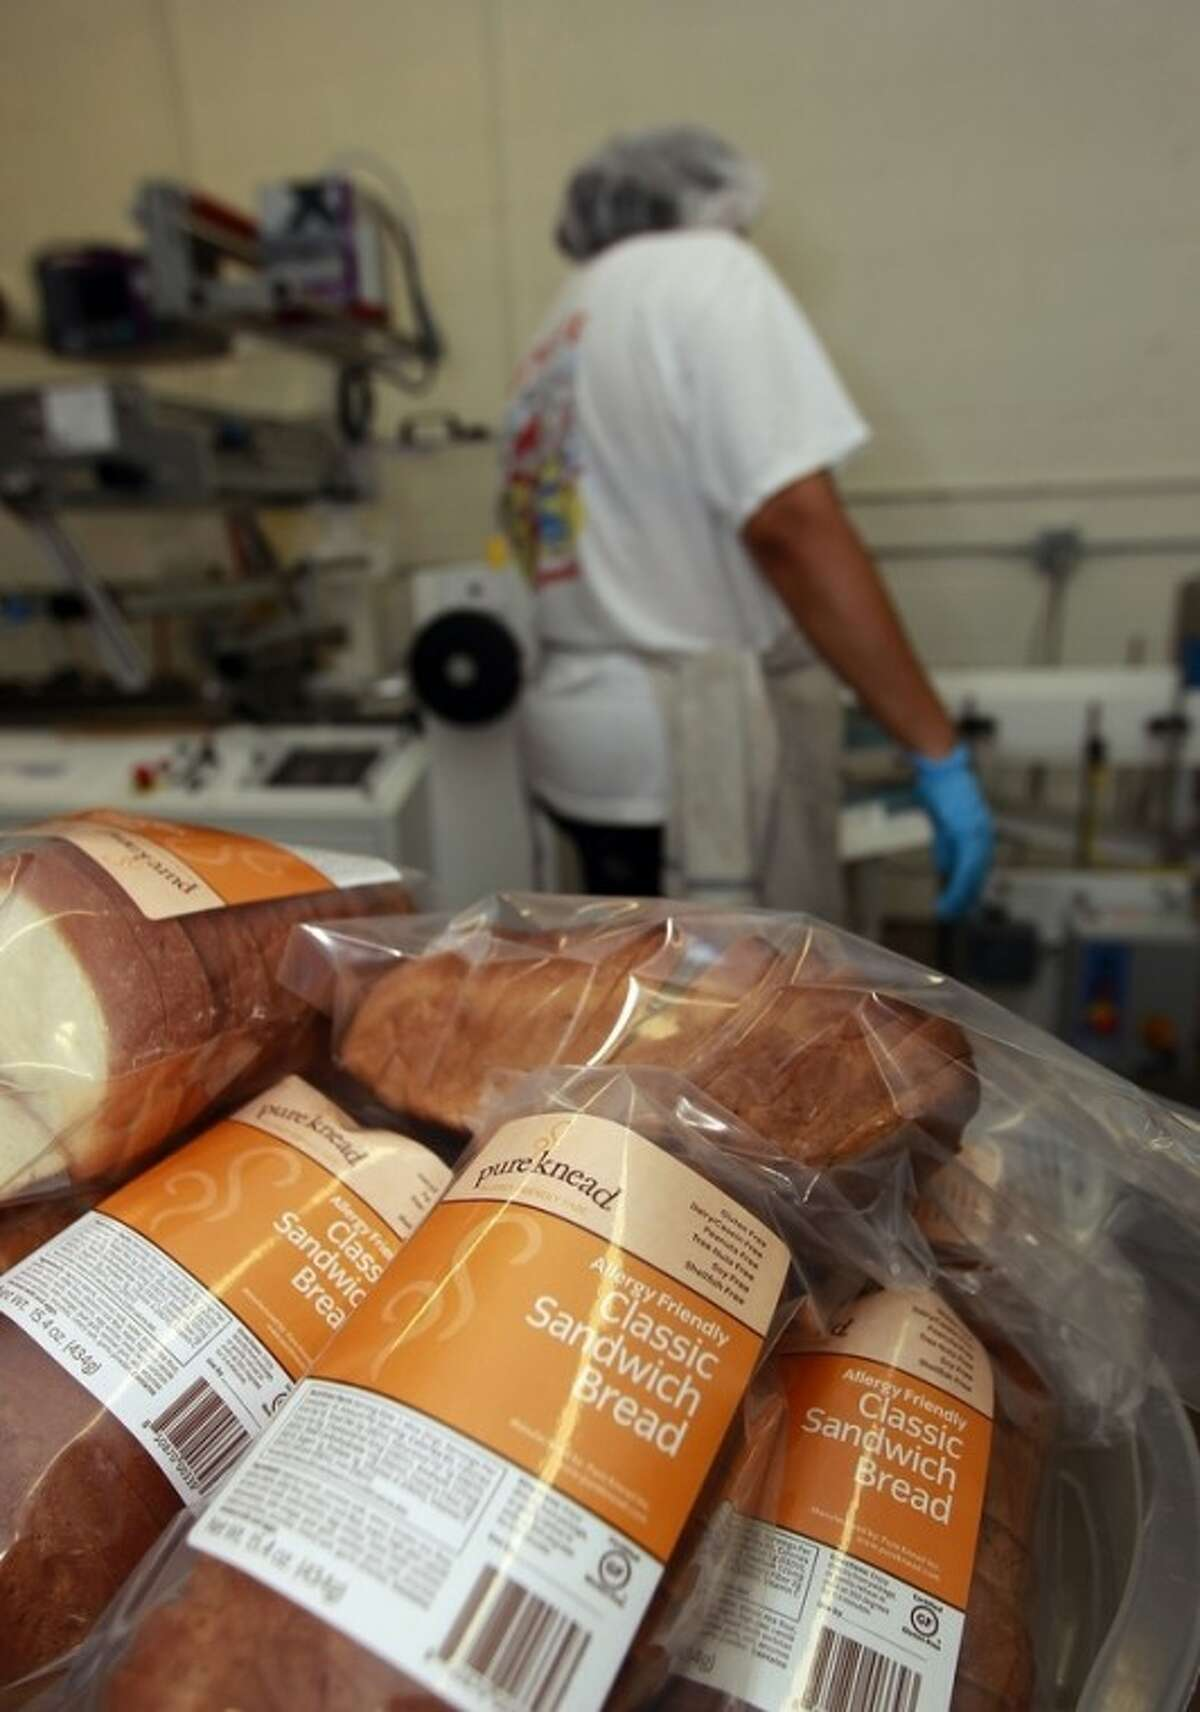 In this Thursday, July 14, 2012 photo, a worker packages gluten-free bread at Pure Knead bakery sandwich bread in Decatur, Ga. A decade ago, virtually no one in the United States seemed to have a problem eating gluten in bread and other foods. Now, millions do and spend more than $7 billion on gluten-free products. Yet, experts estimate that more than half of those consumers don?'t have any clear-cut reaction to gluten. (AP Photo/John Bazemore)